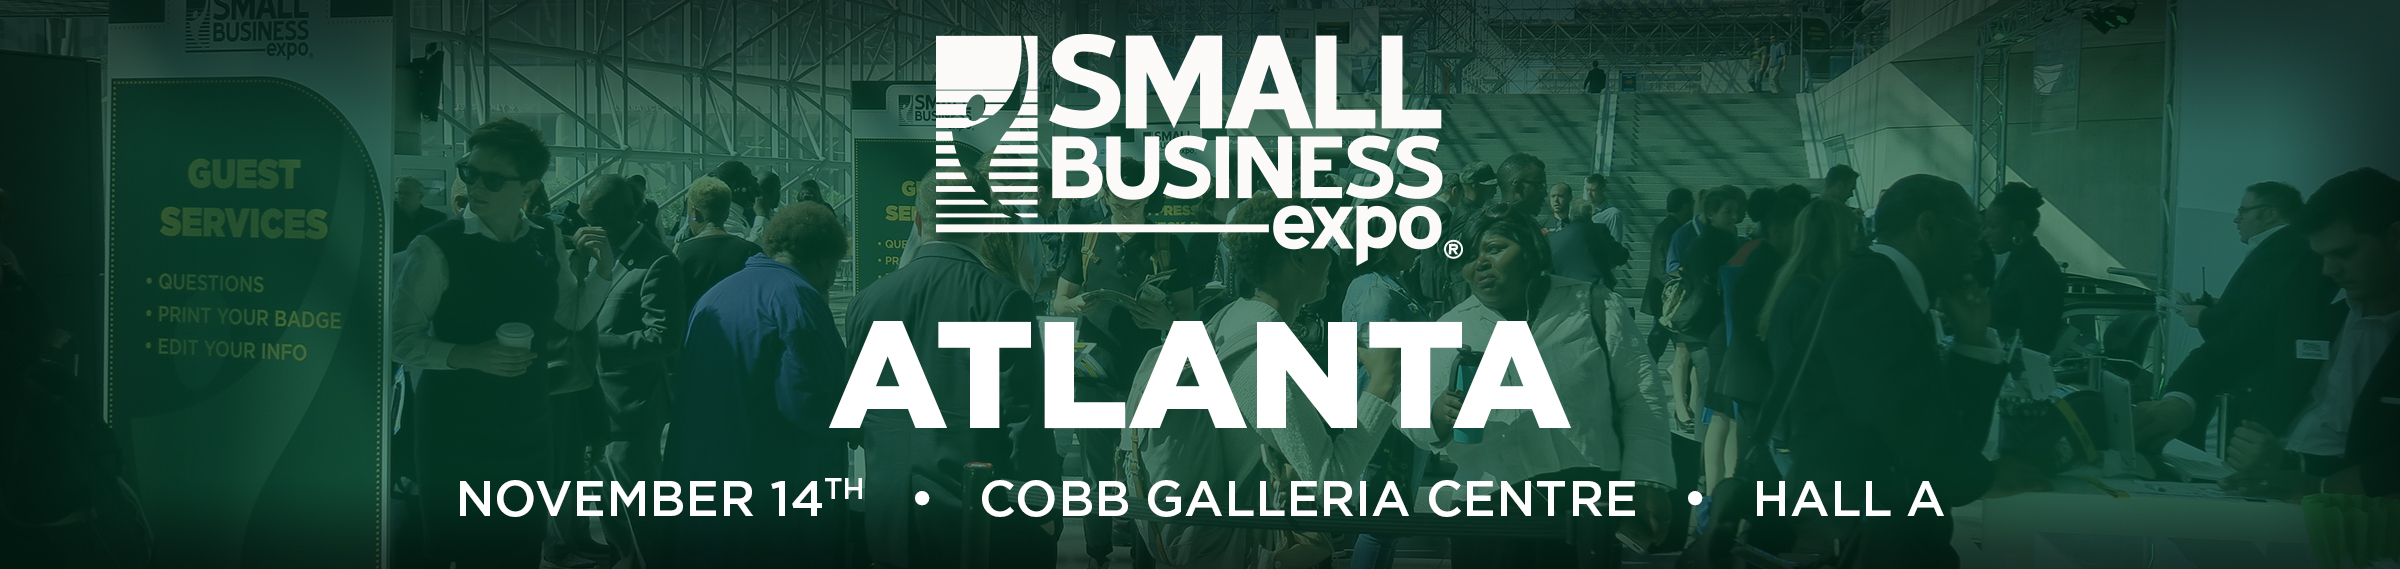 GCBCC to Exhibit During Atlanta Small Business Expo